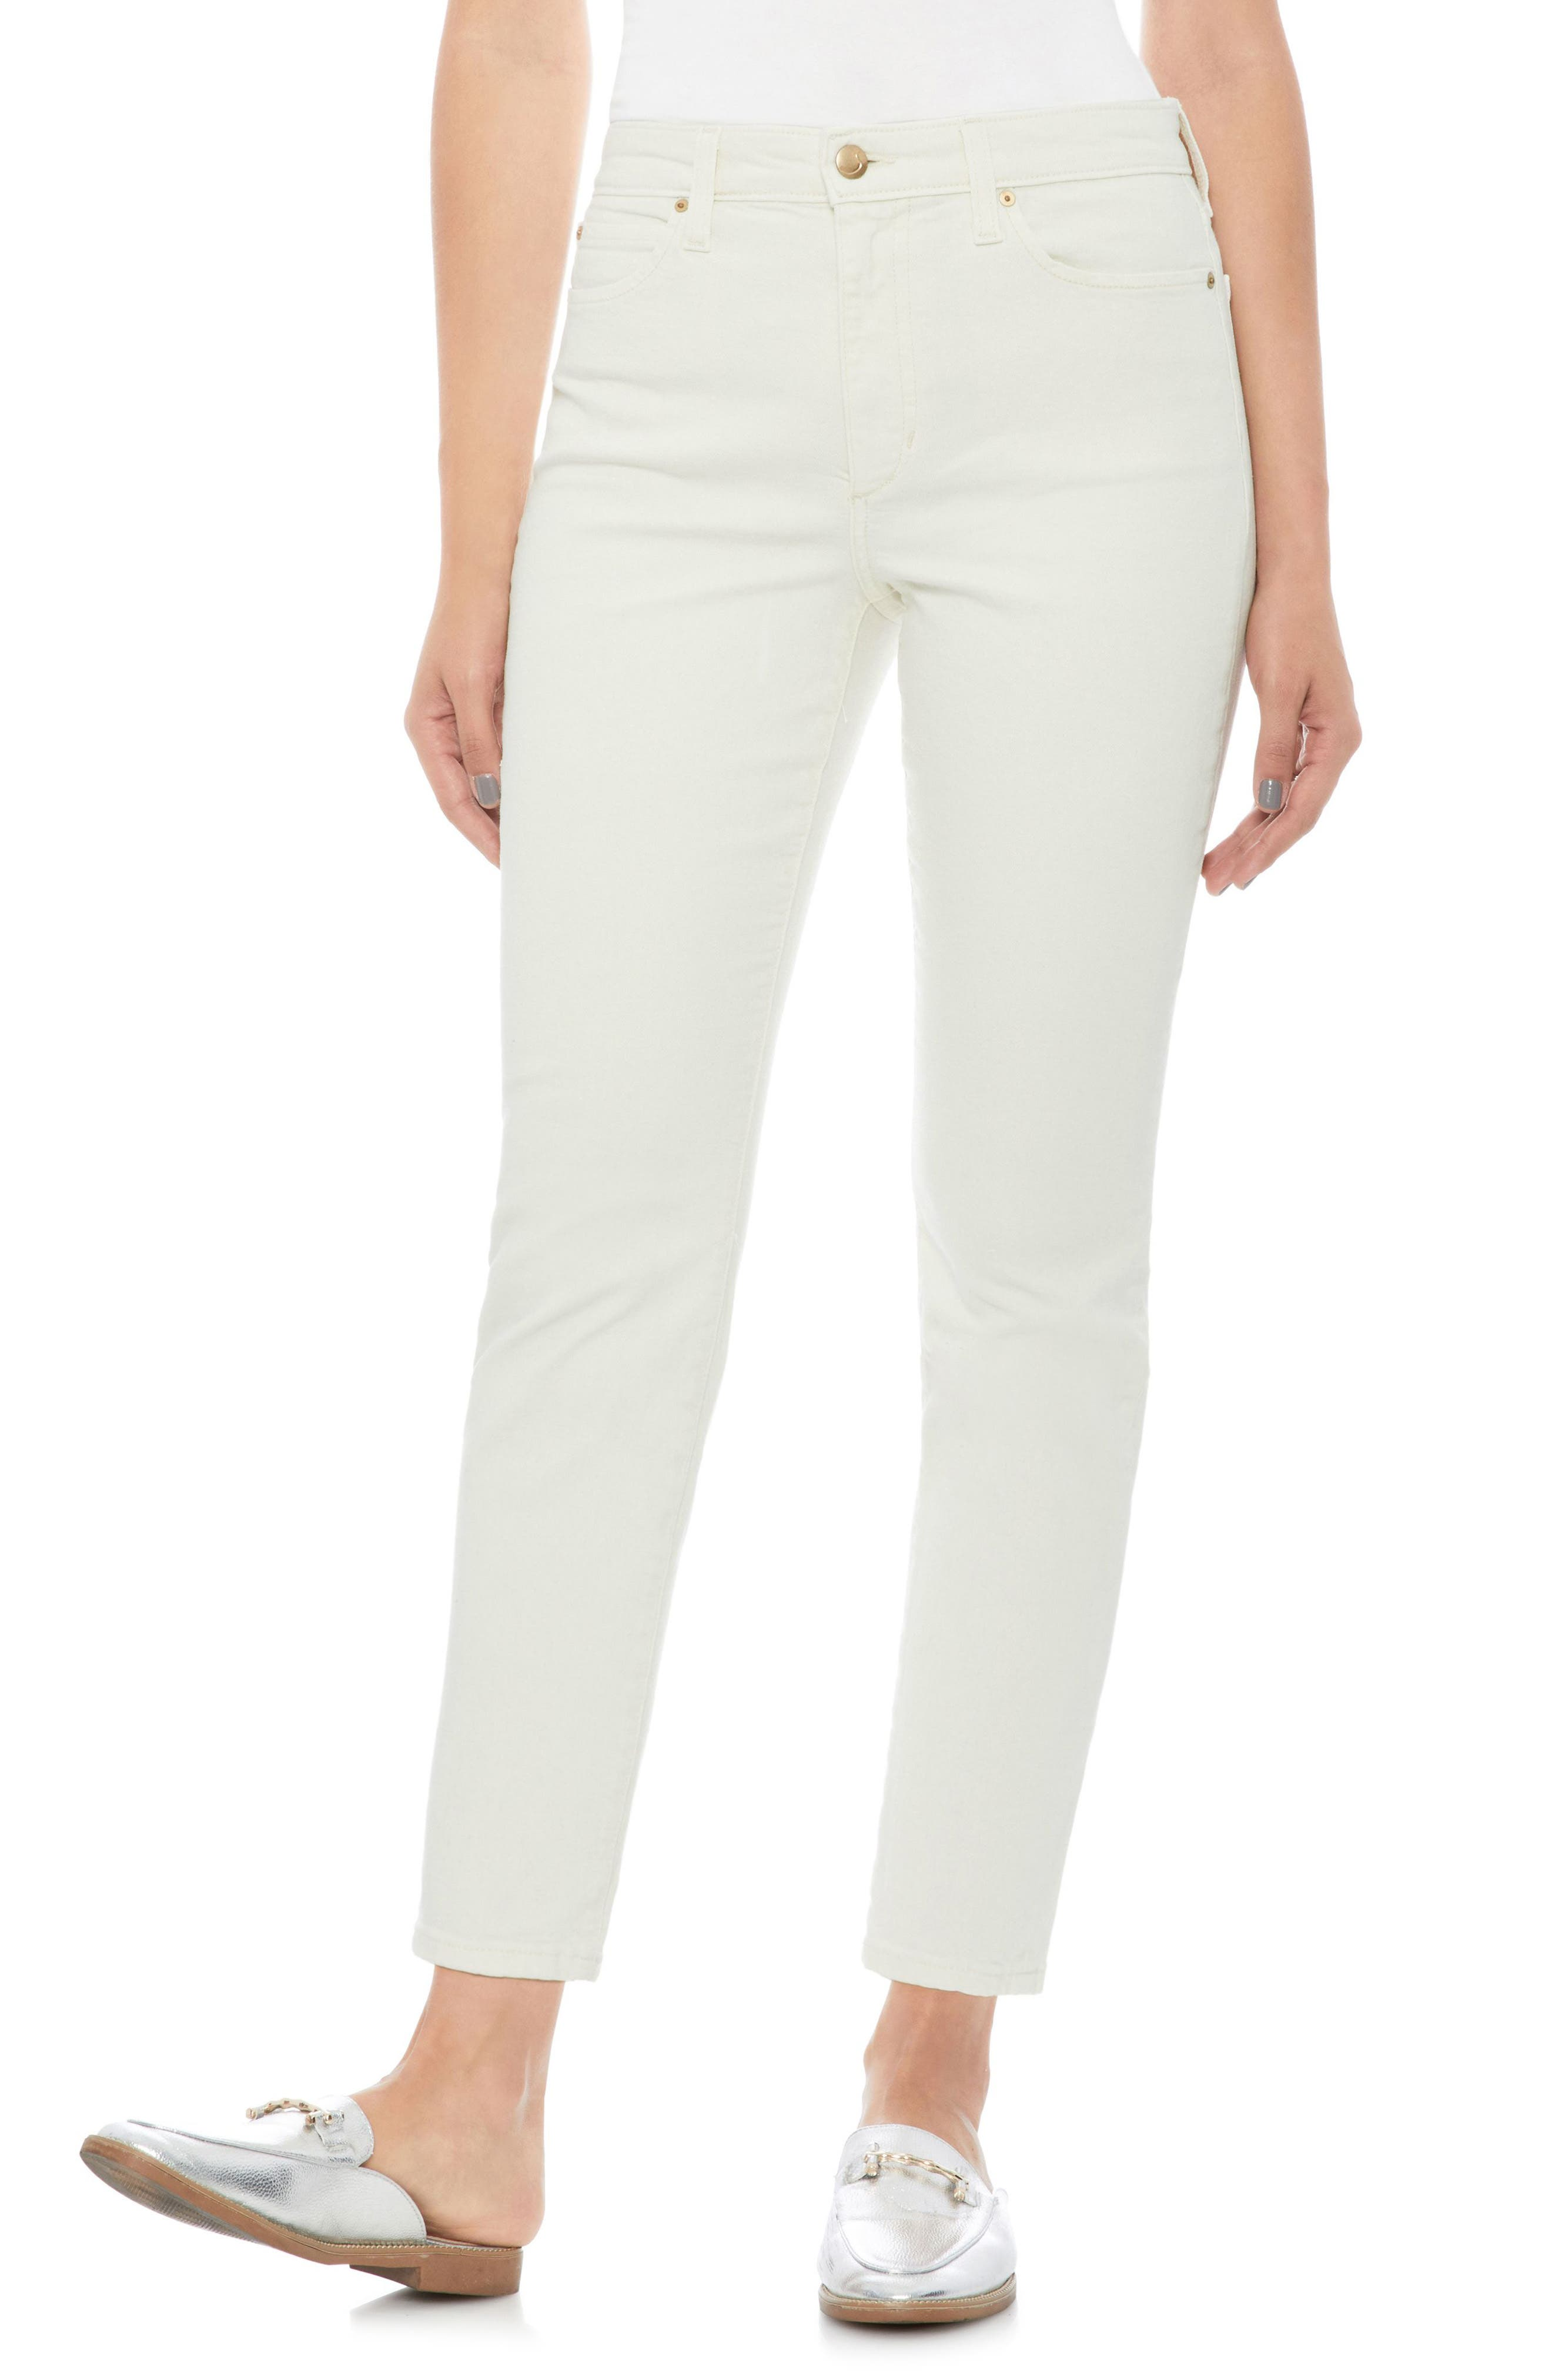 Smith High Waist Ankle Slim Jeans,                         Main,                         color, 100